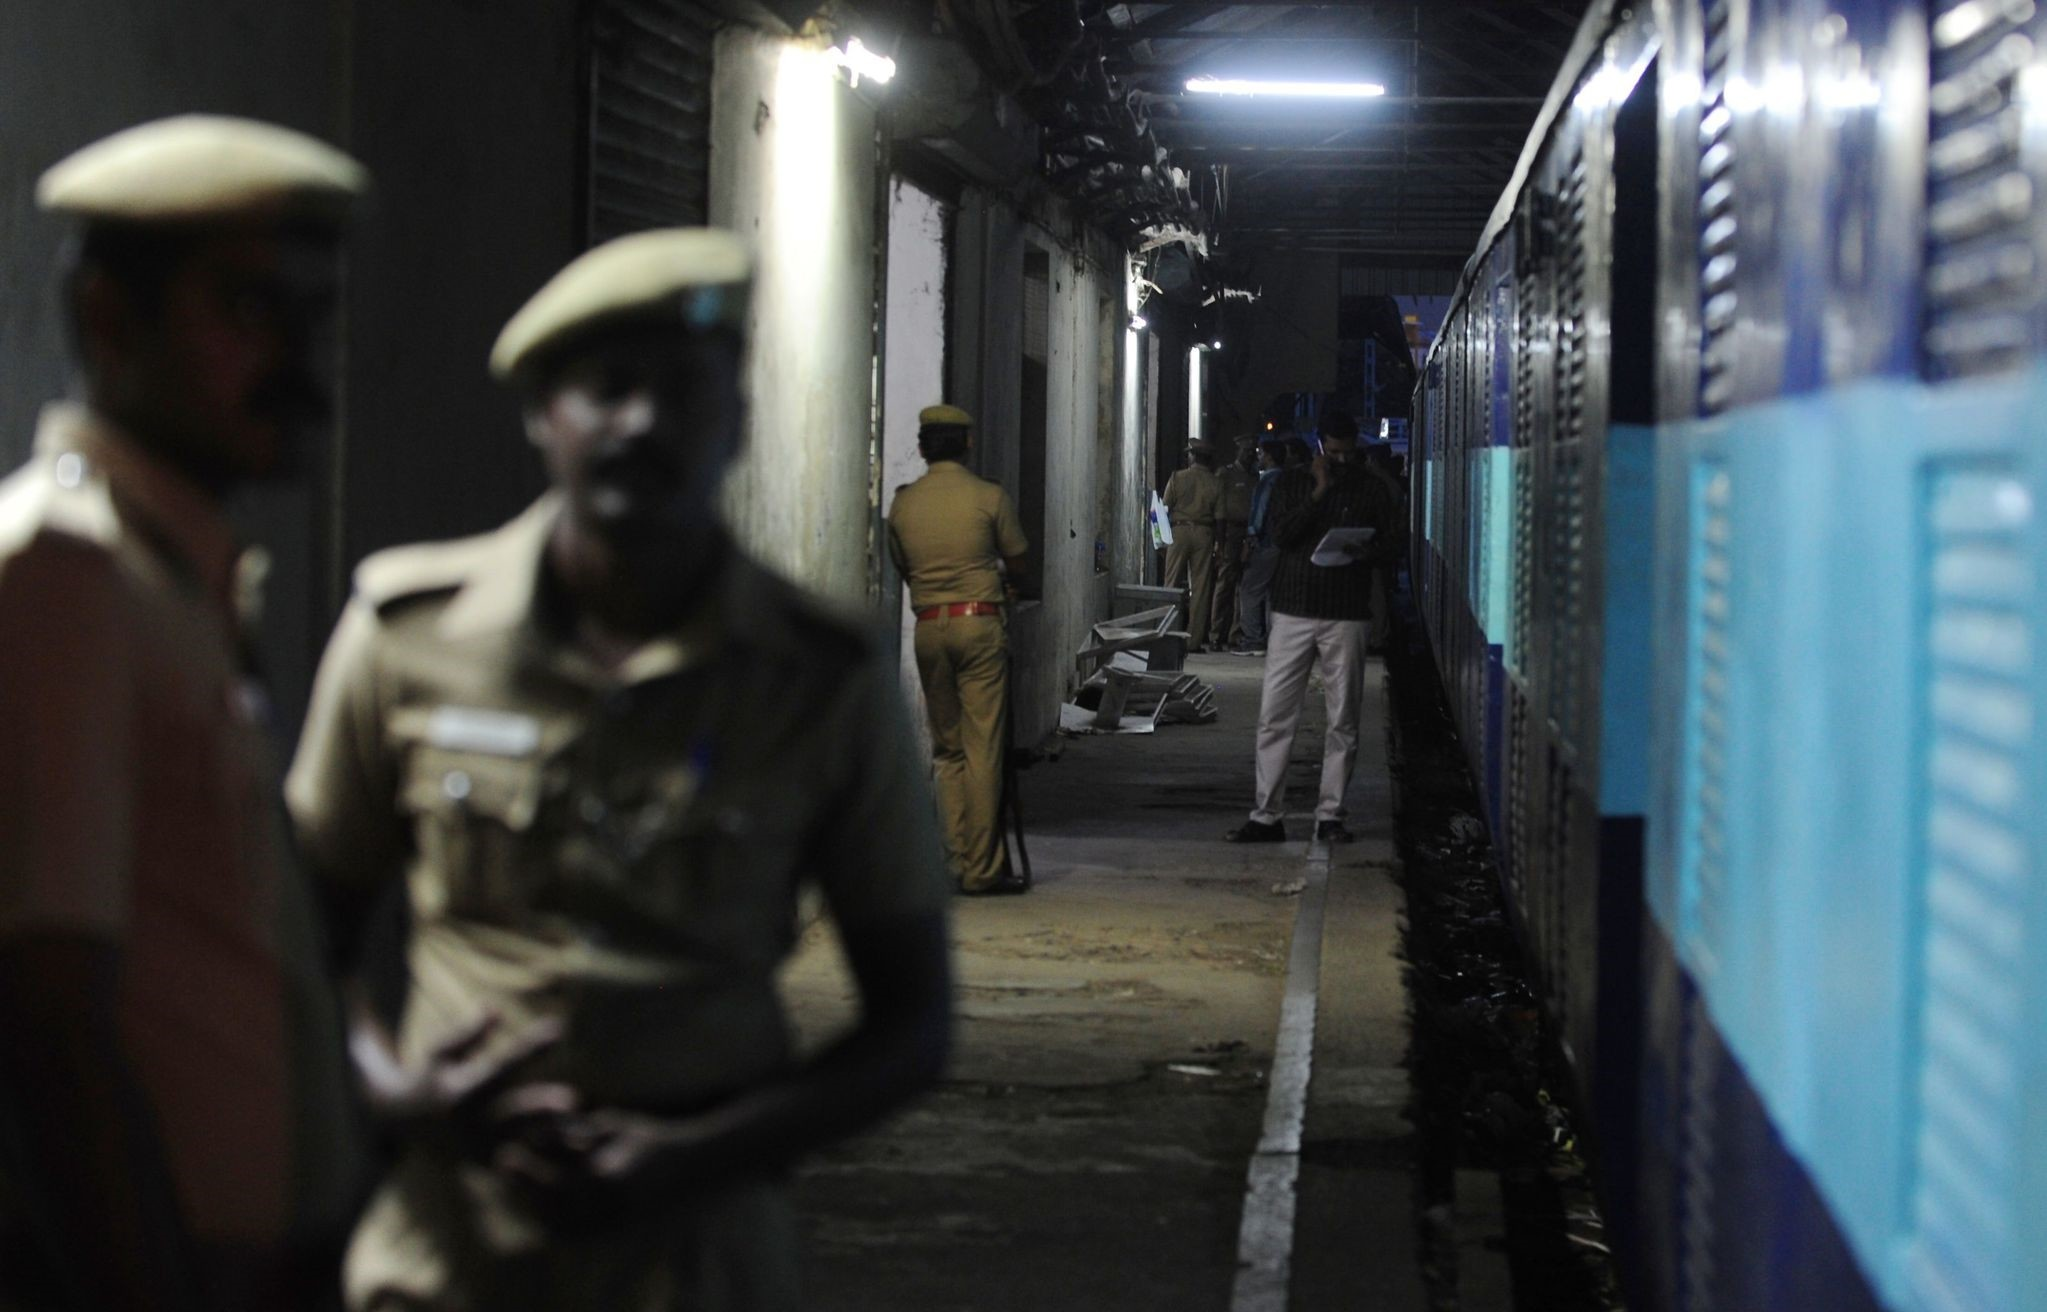 Indian police personnel stand guard alongside the Salem-Chennai Express train, which was robbed while in transit, at Egmore Railway station in Chennai on August 9, 2016. (AFP Photo)